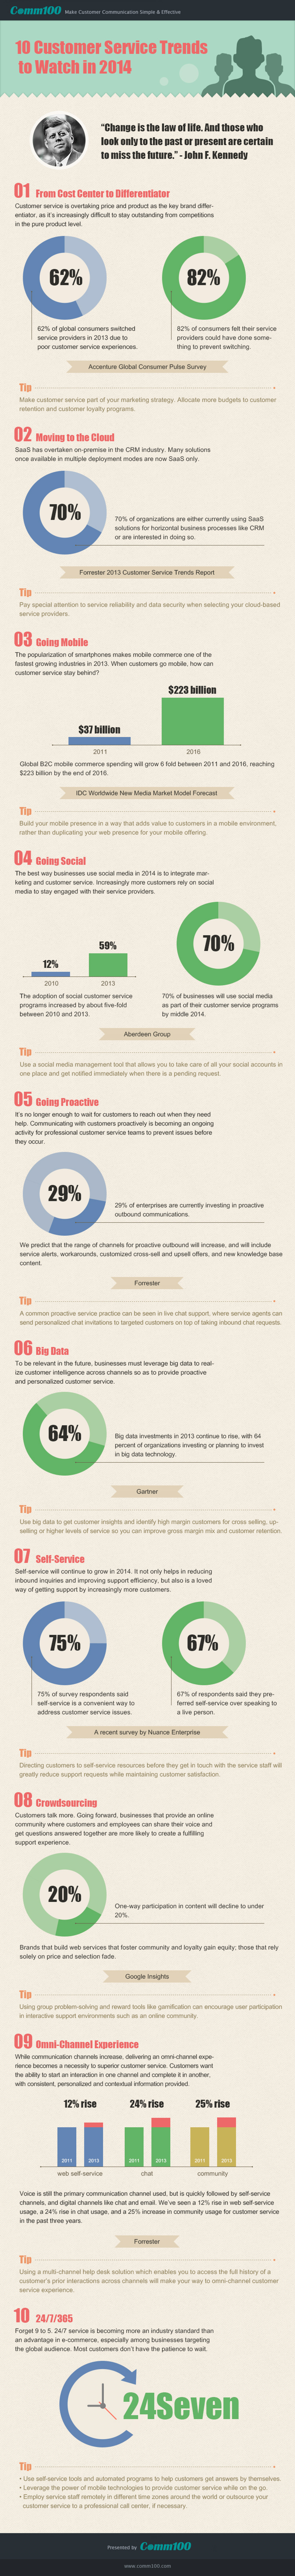 10 Customer Service Trends to Watch in 2014  Infographic